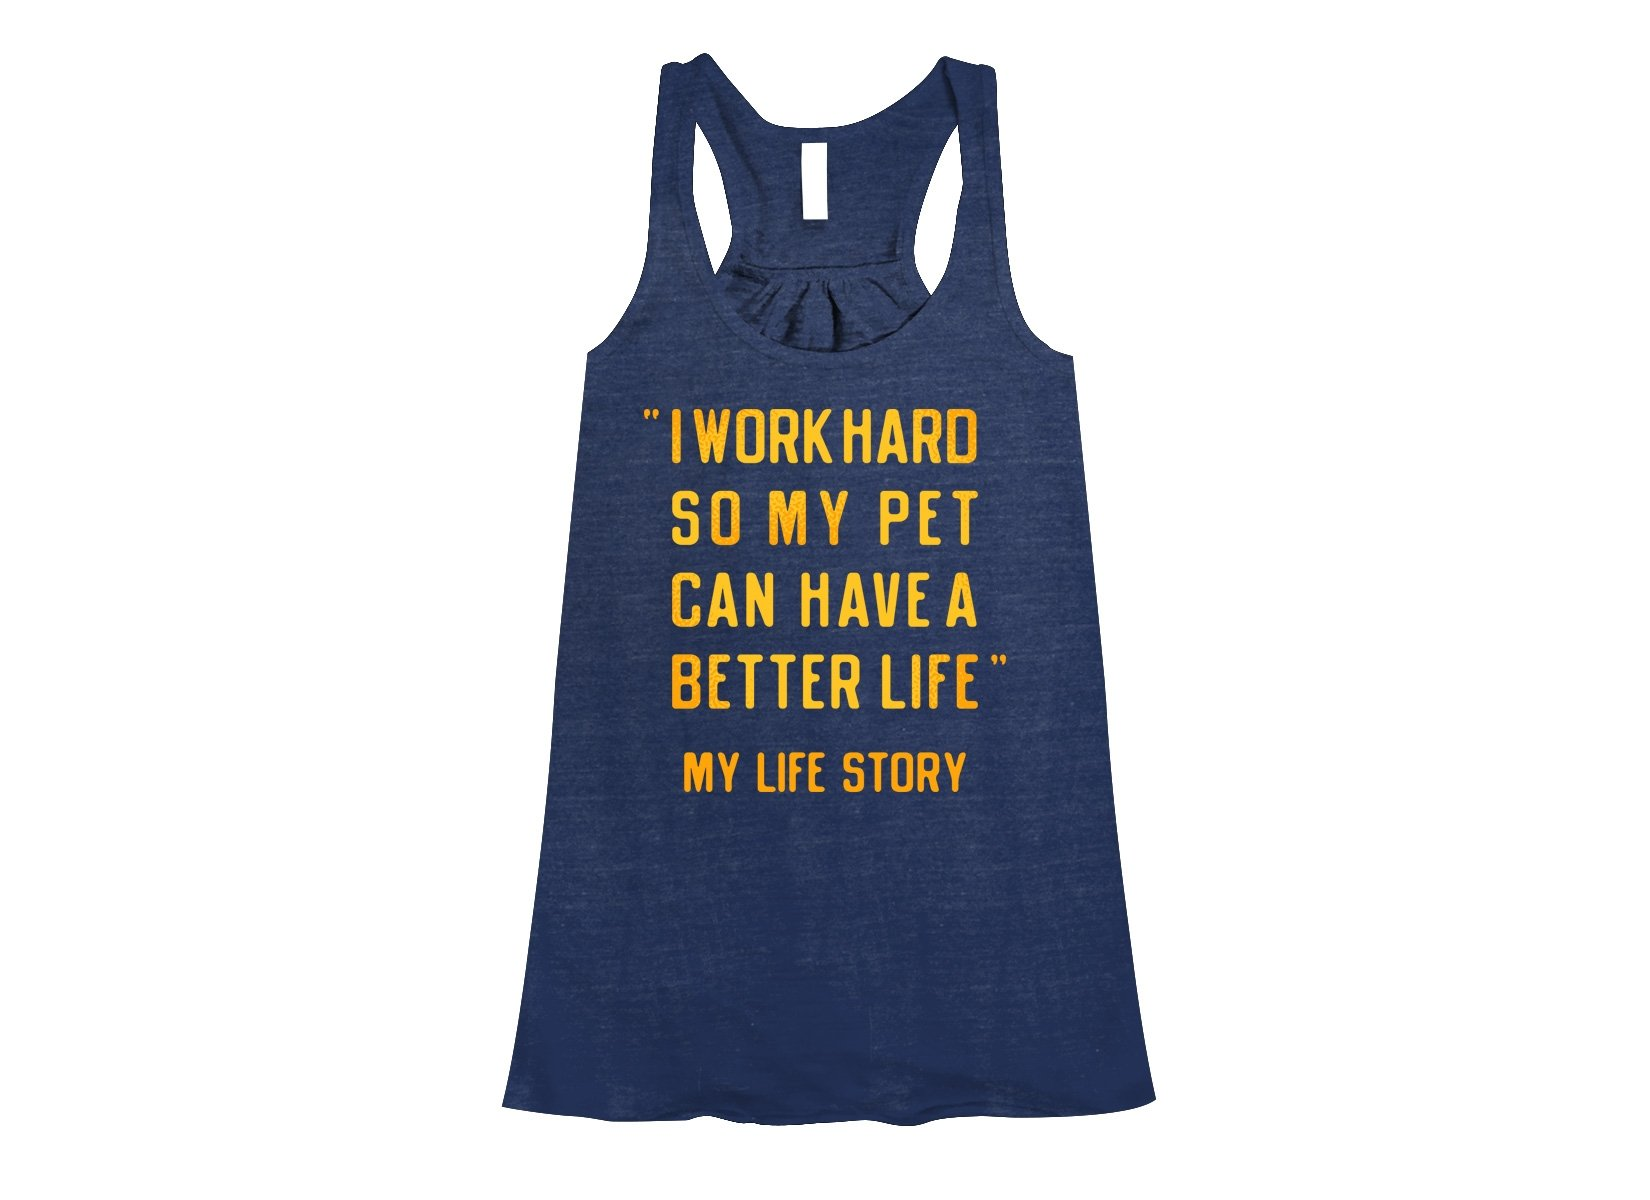 I Work Hard So My Pet Can Have A Better Life on Womens Tanks T-Shirt